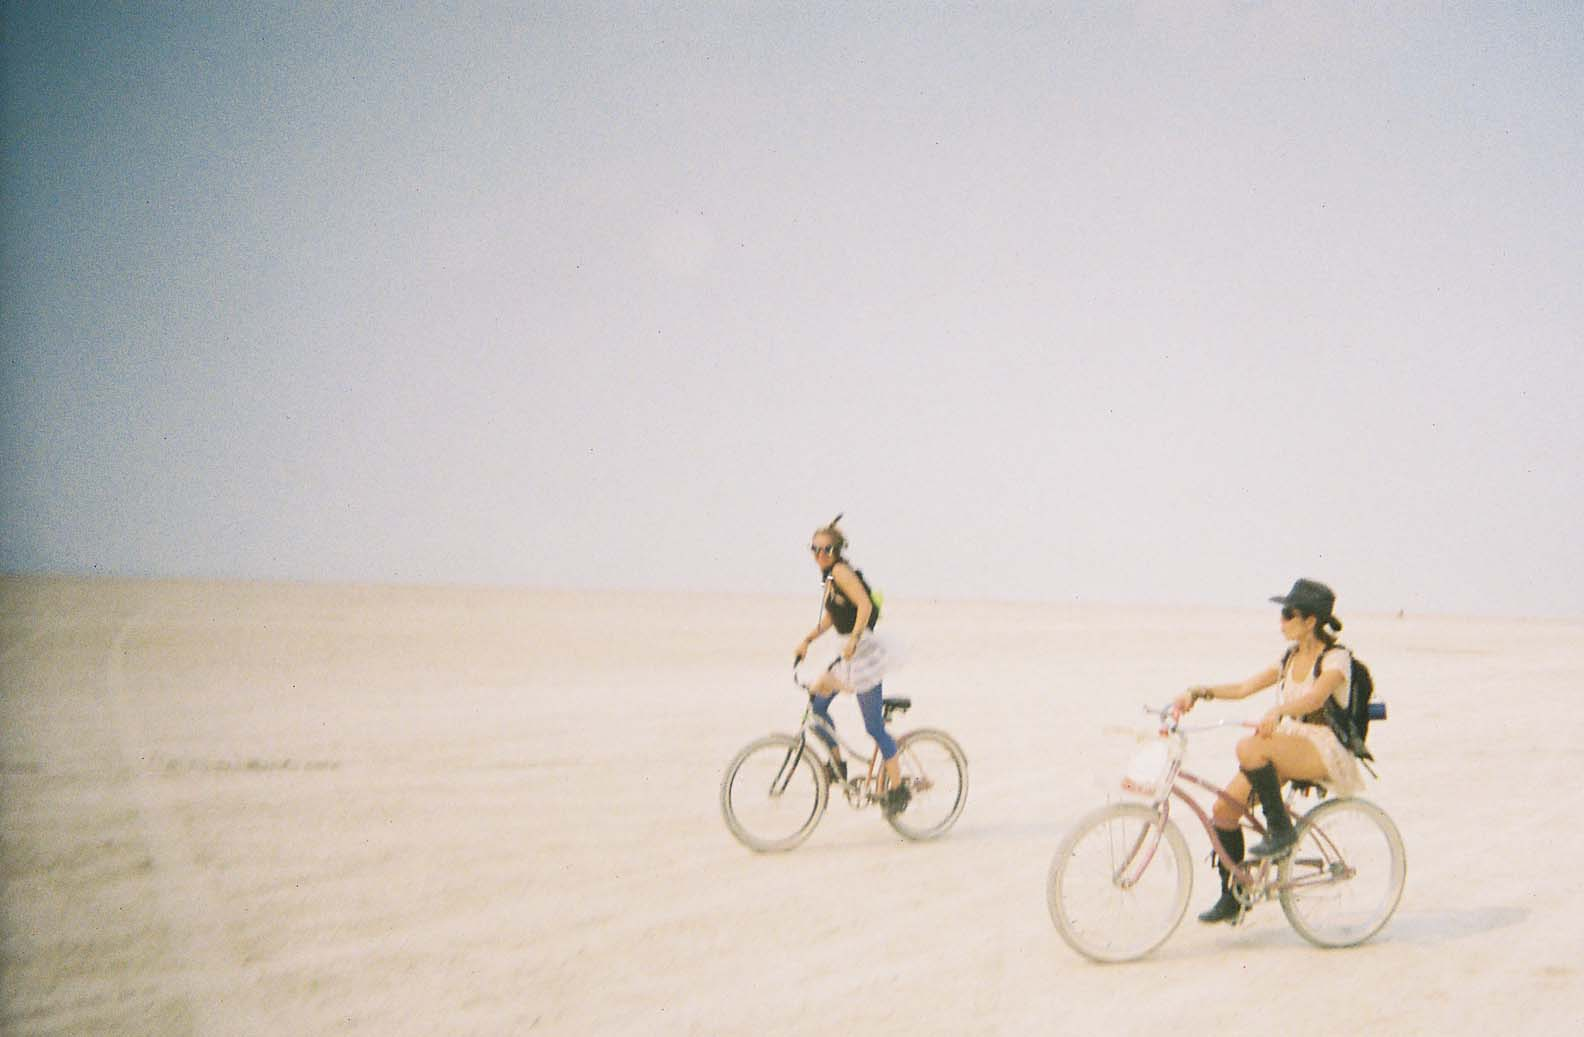 burningman6.jpg